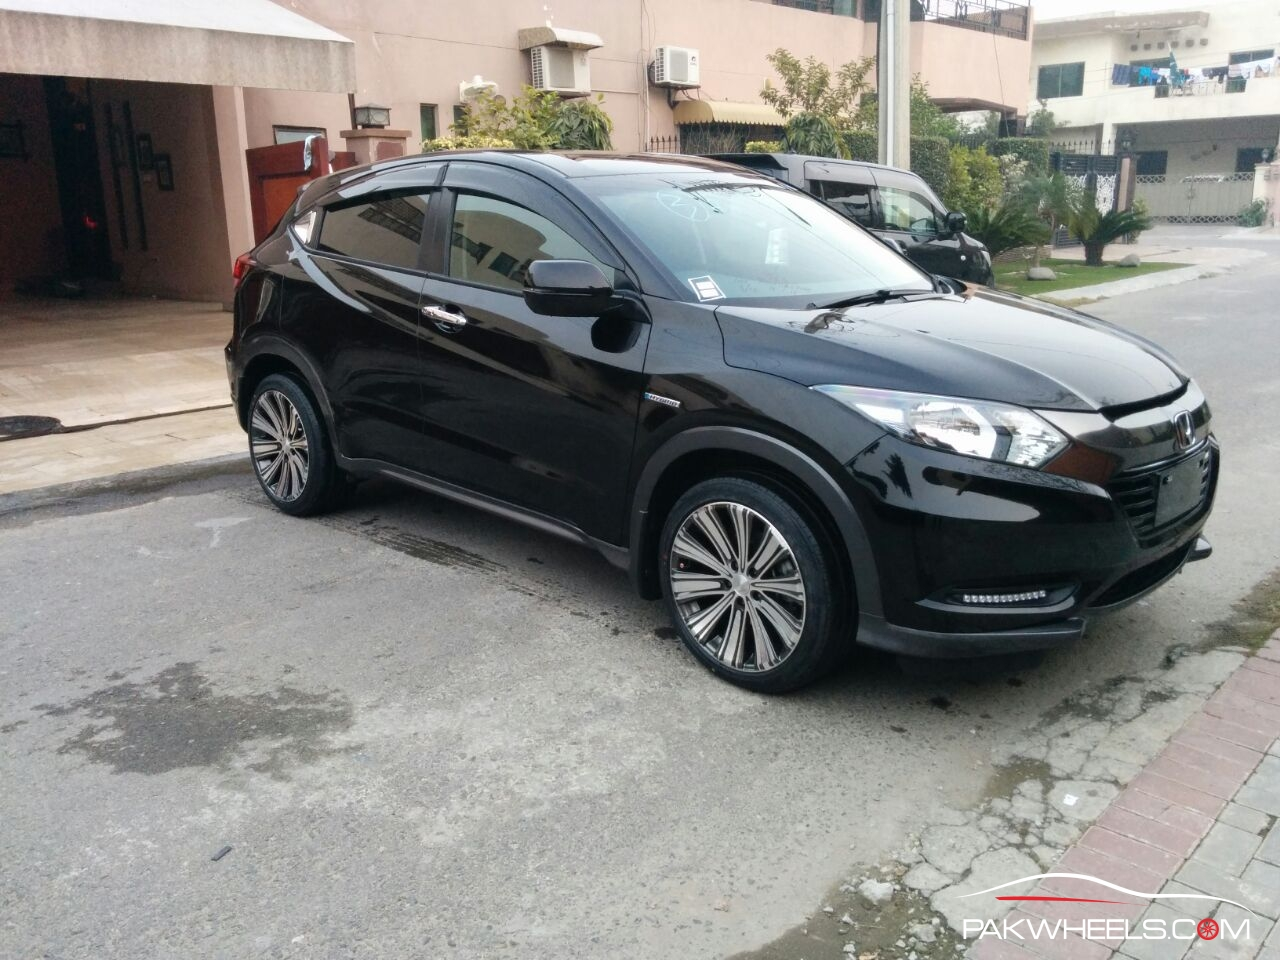 2014 Honda Vezel Hybrid Owner S Review Pakwheels Blog